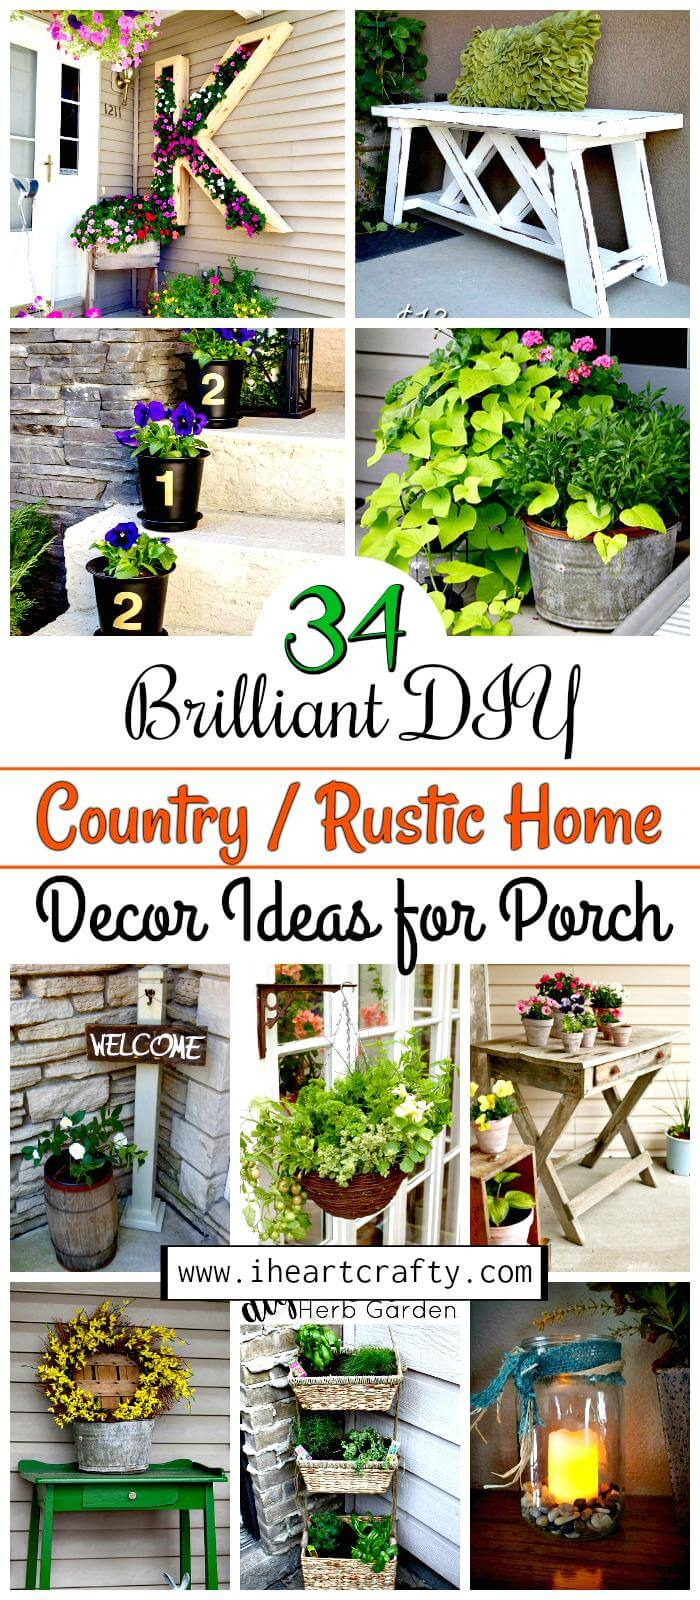 34 brilliant diy country rustic home decor ideas for porch Rustic home decor ideas diy